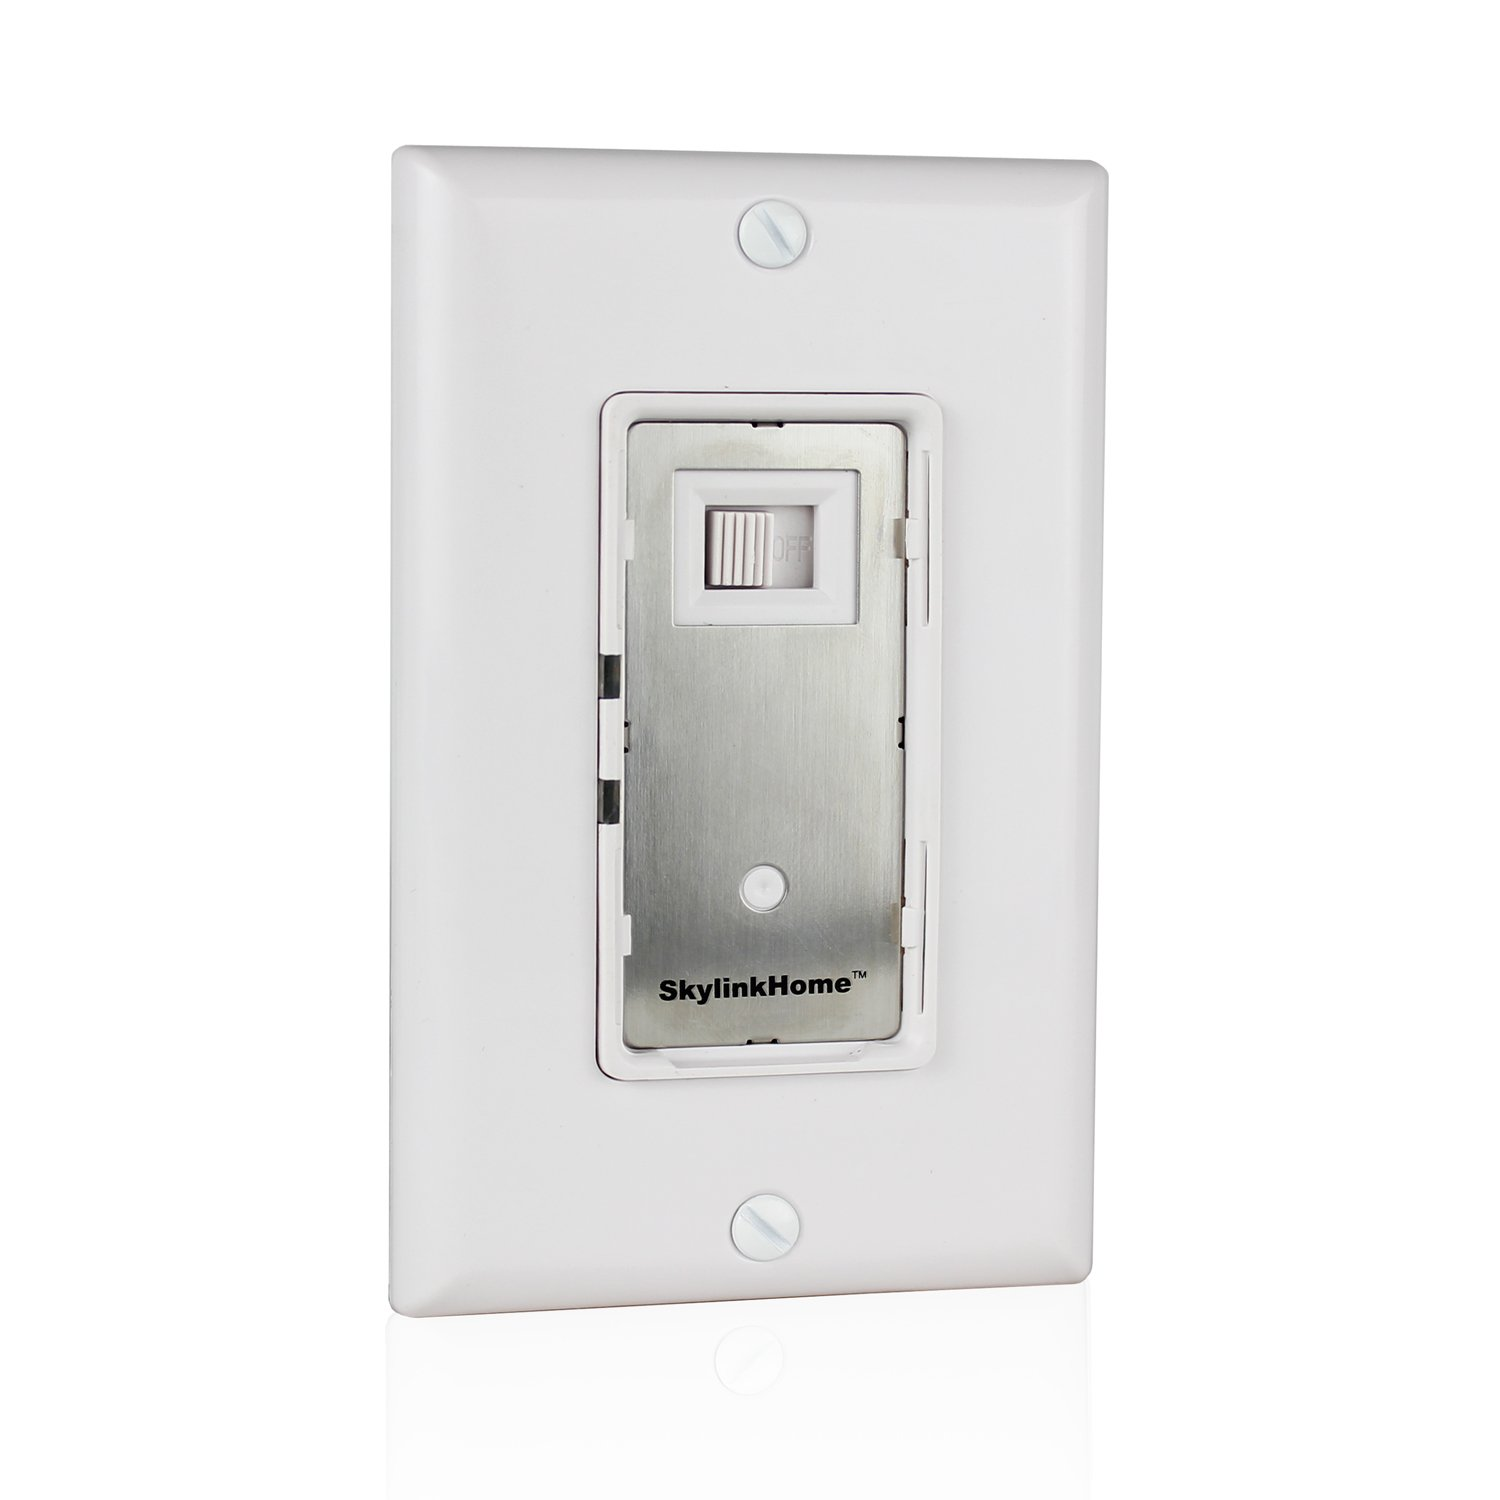 SkylinkHome WR-001 Dimmable Wall Switch Lighting Control In-Wall Remote Controllable Home Automation Smart Light Receiver,SkylinkNet Compatible Easy DIY Installation without neutral wire (300 Watts)